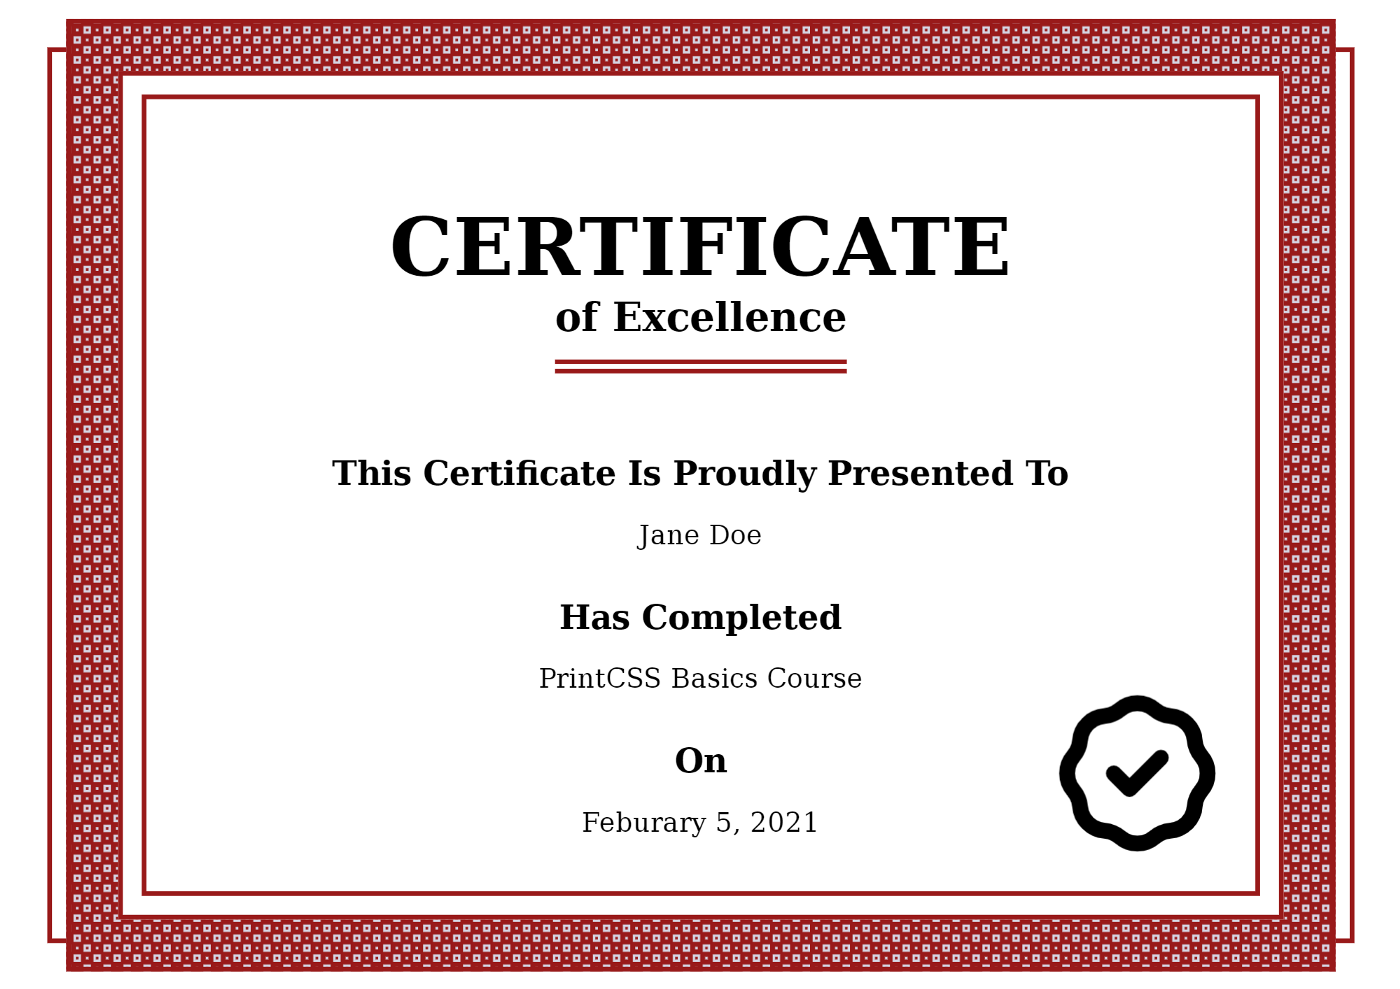 The result certificate PDF rendered with WeasyPrint.